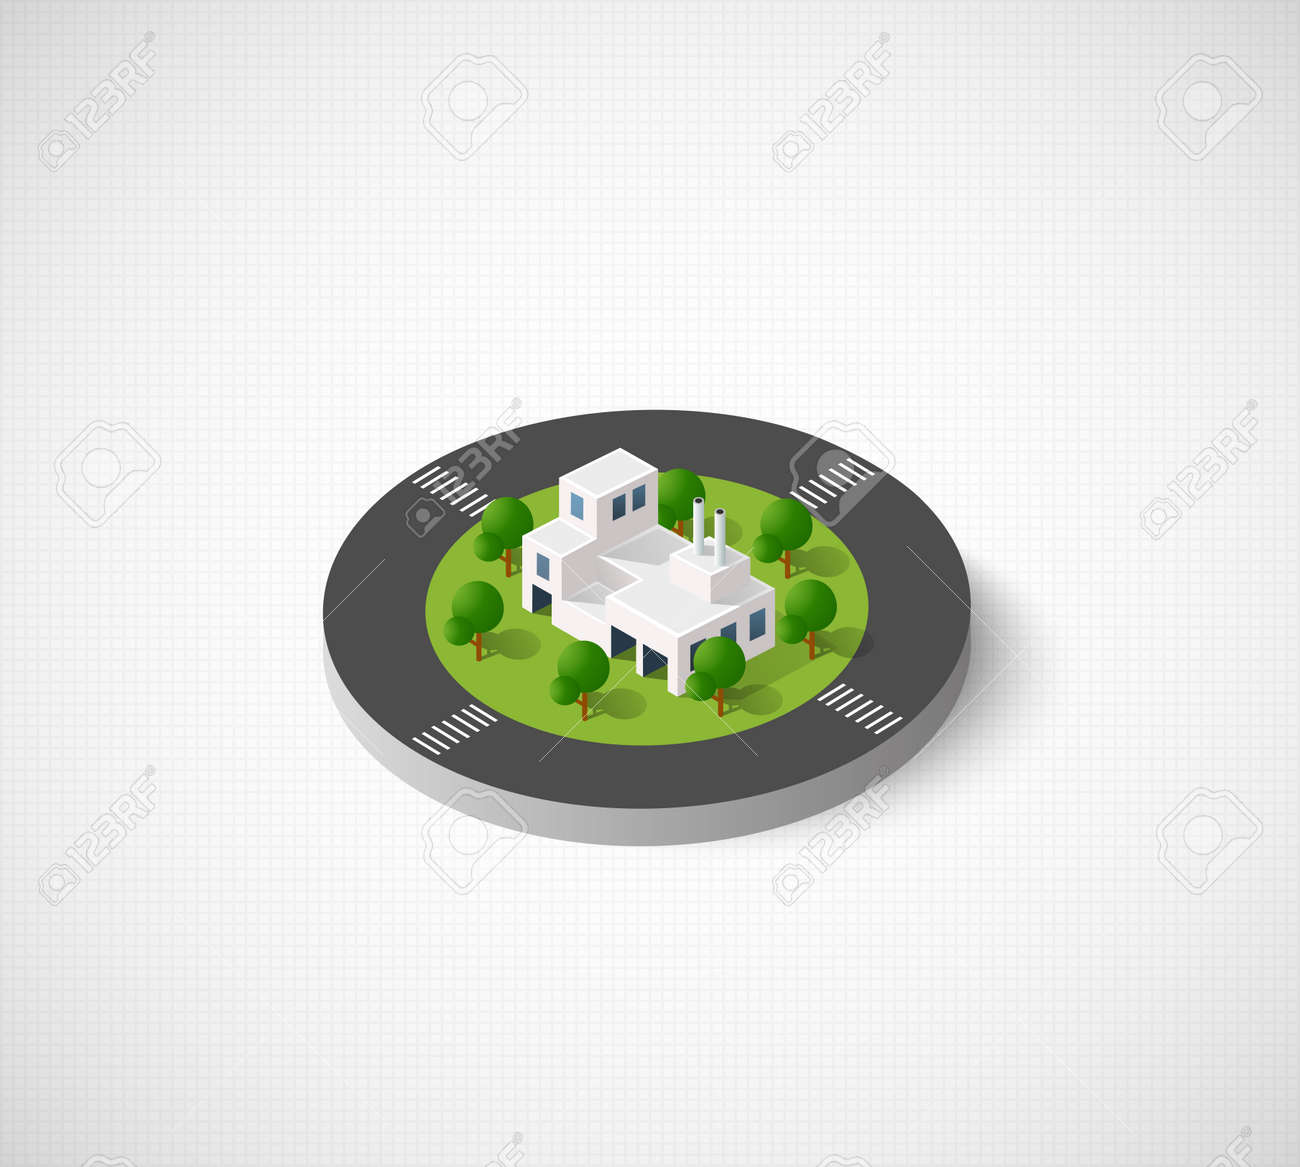 Icon of the city with isometric houses skyscrapers streets and icon of the city with isometric houses skyscrapers streets and trees urban signs biocorpaavc